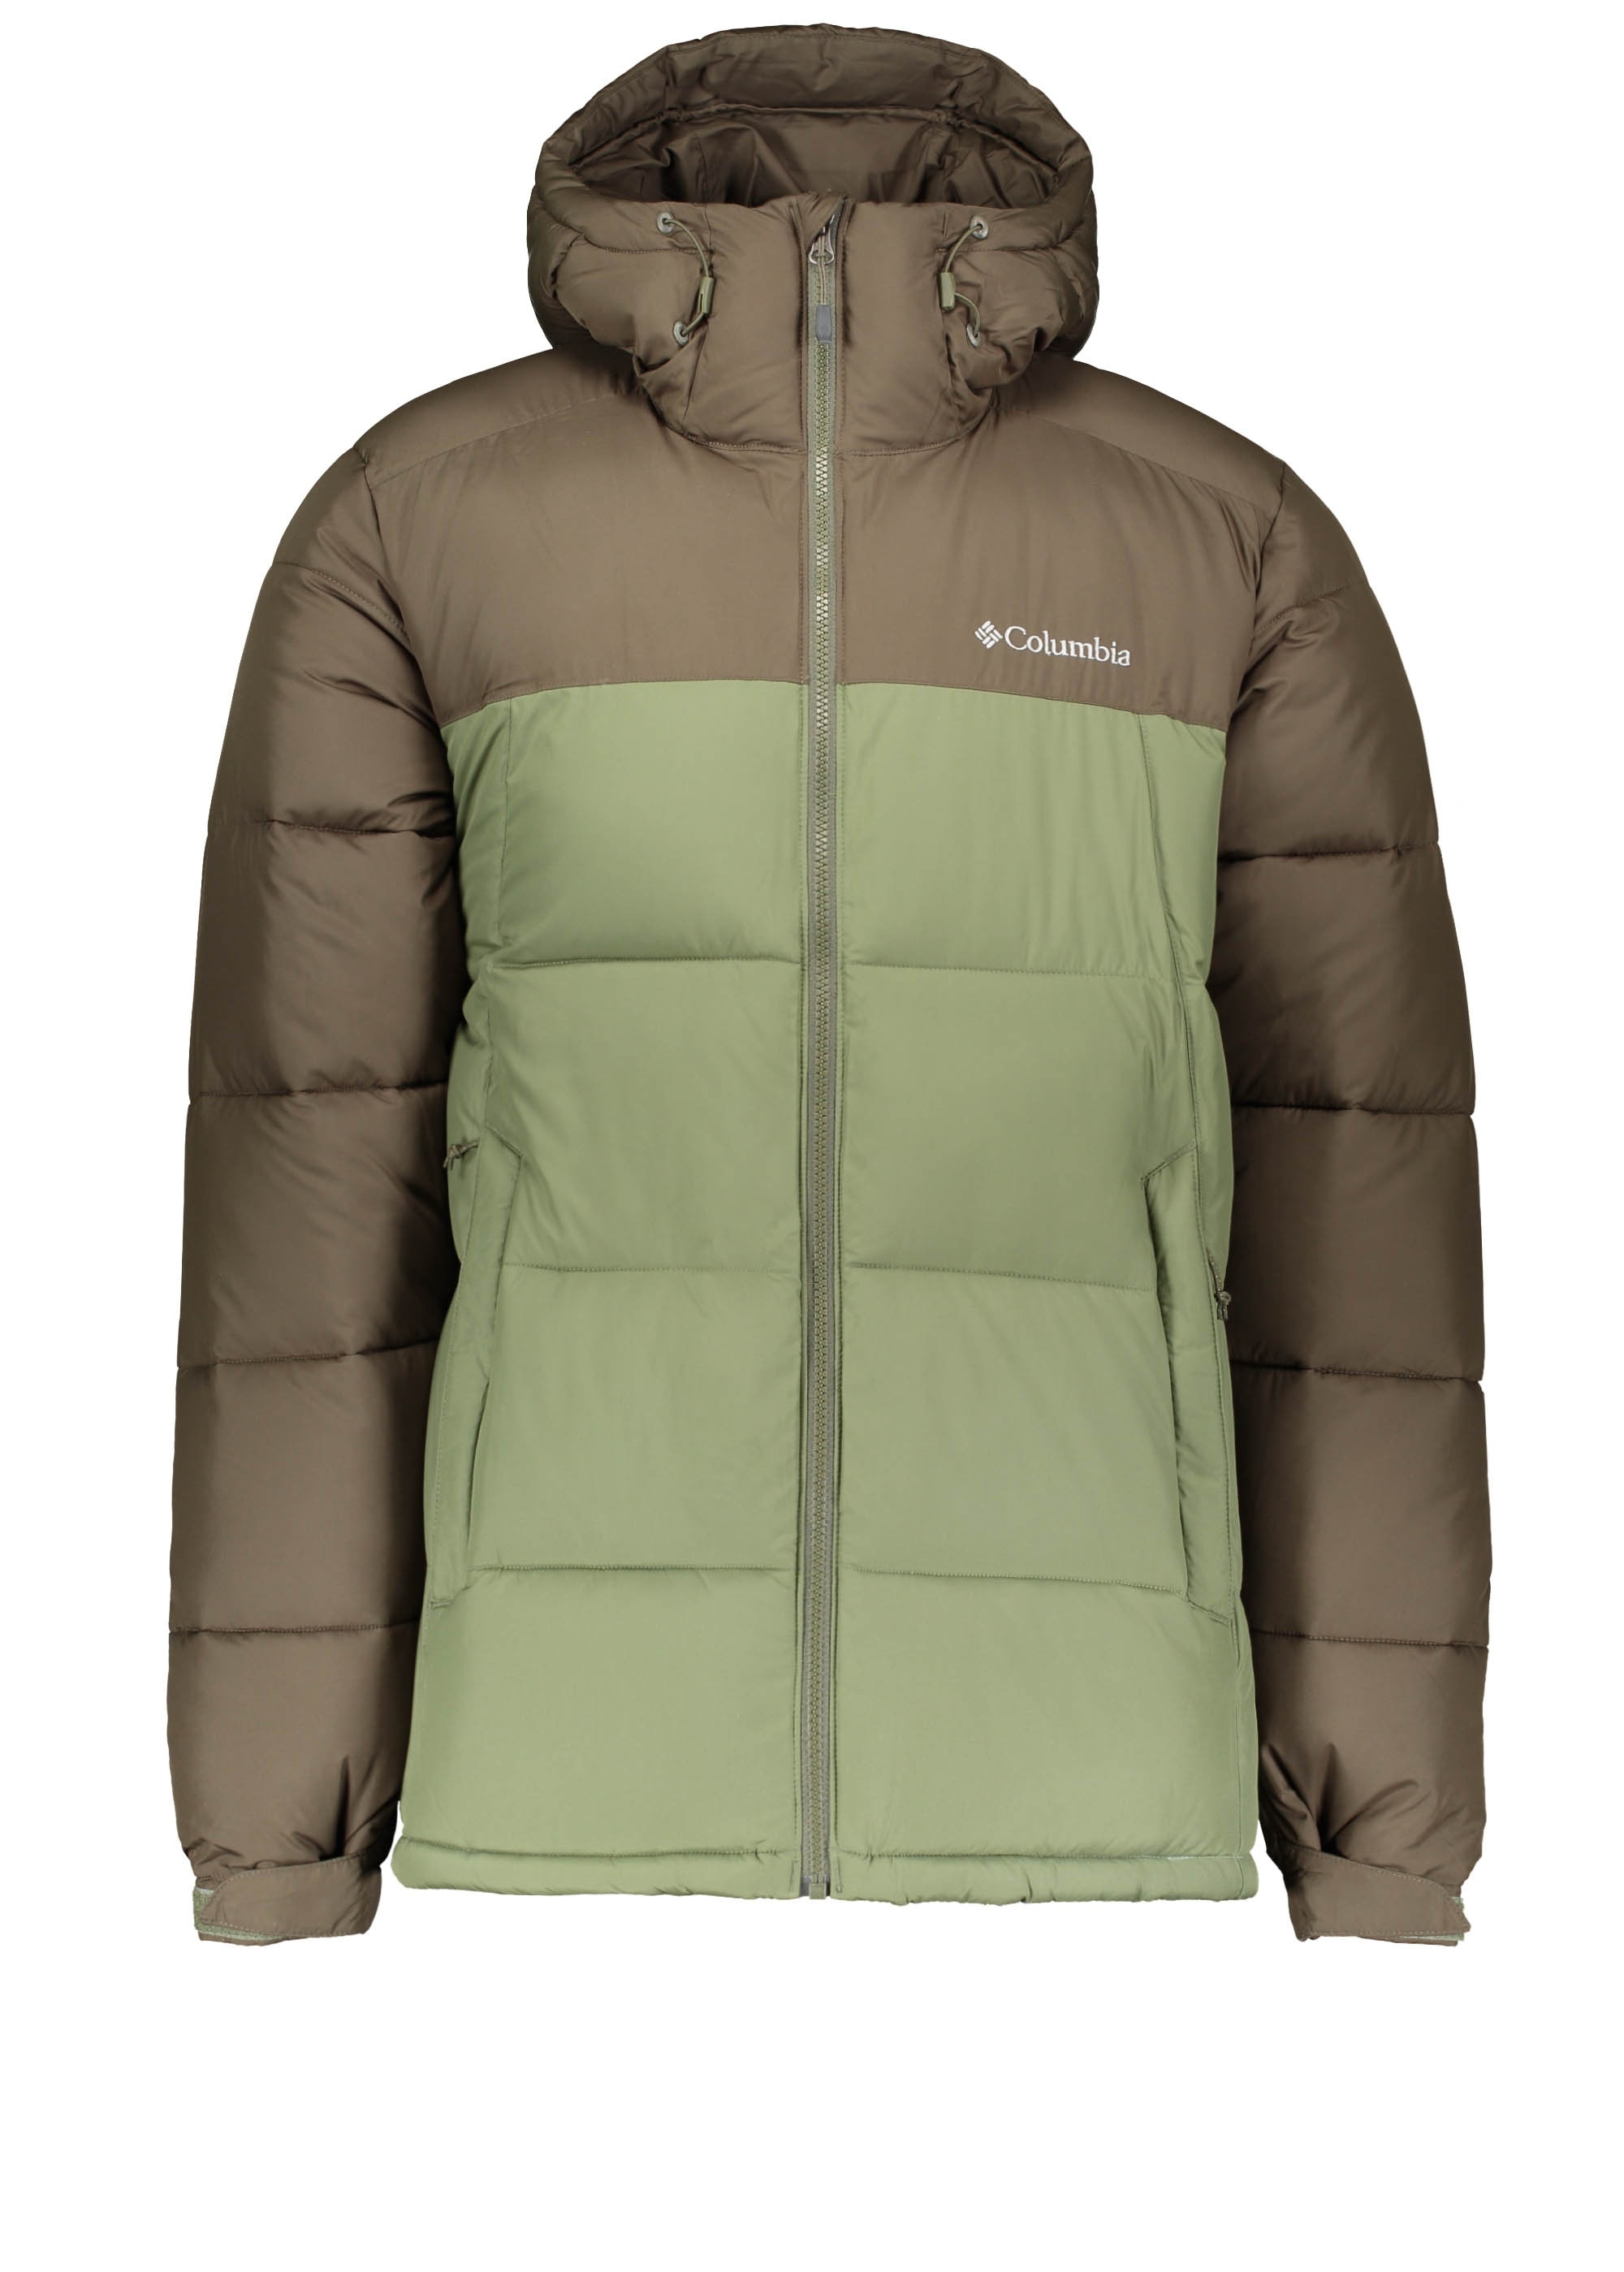 8acc1f1587d1 Columbia Pike Lake Hooded Jacket - Peat Moss - Jackets from Triads UK